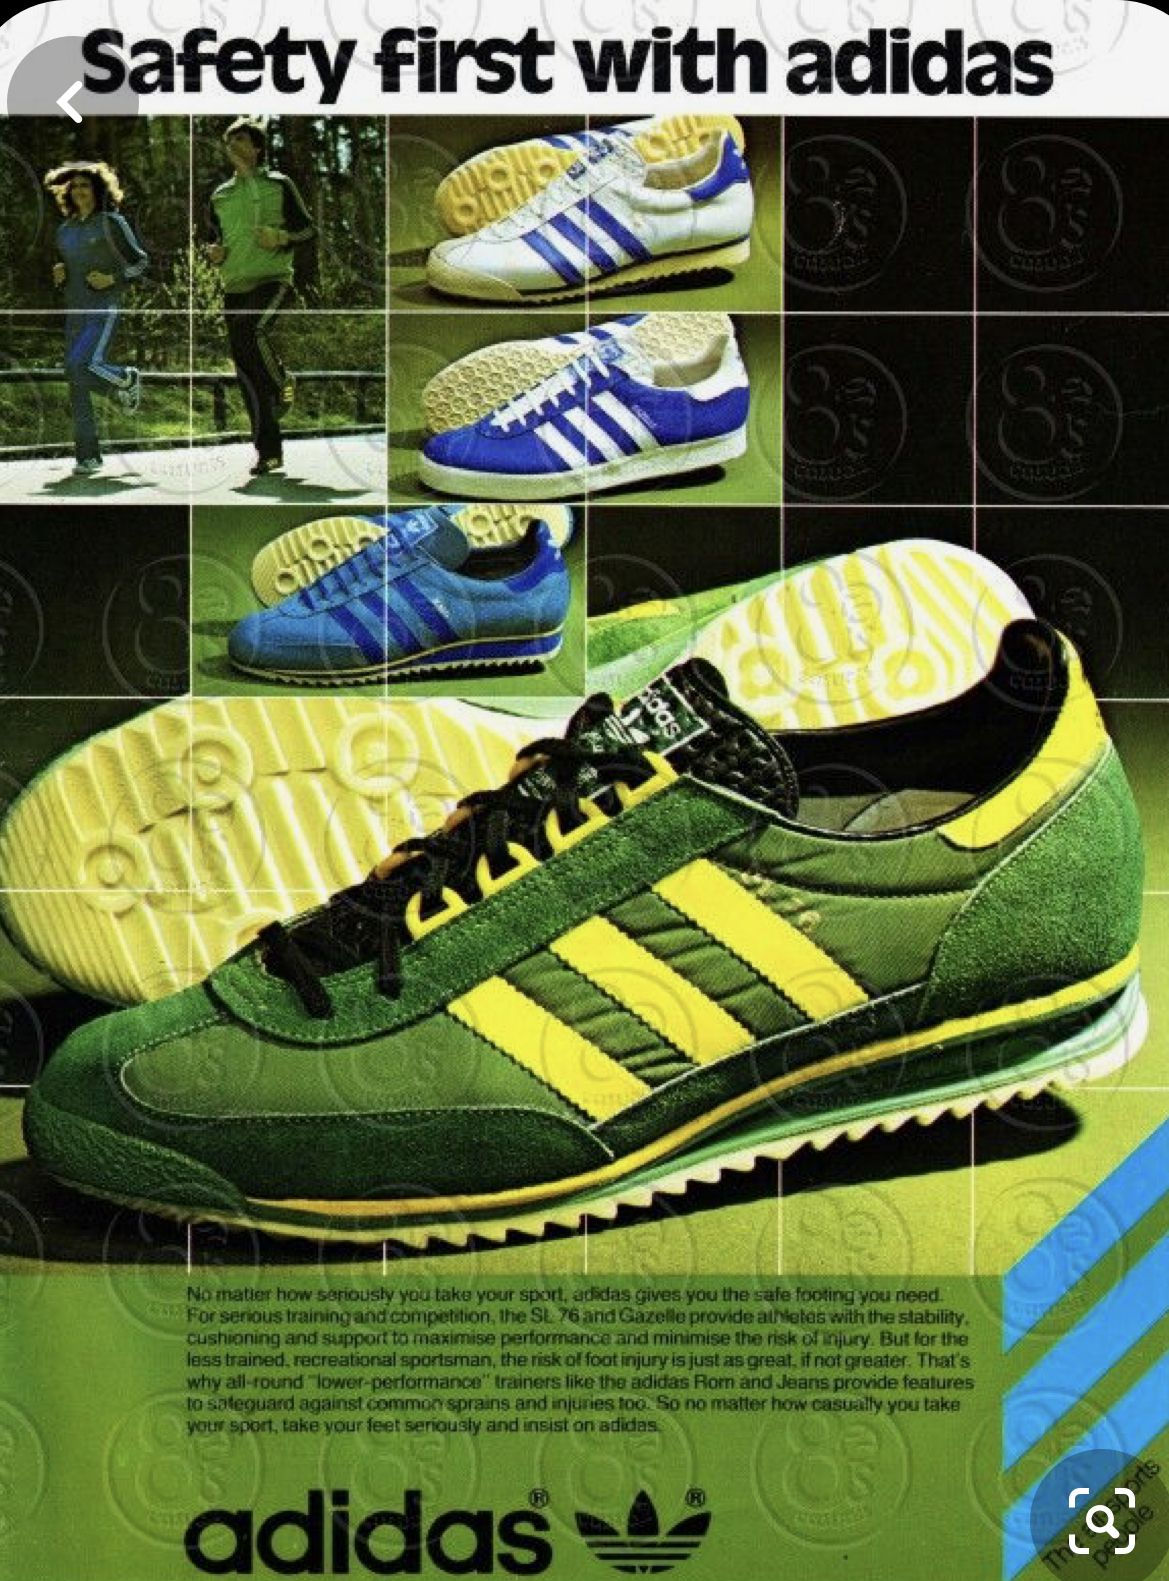 Pin by Freddy Tapia on Trainers | Adidas shoes mens sneakers ...